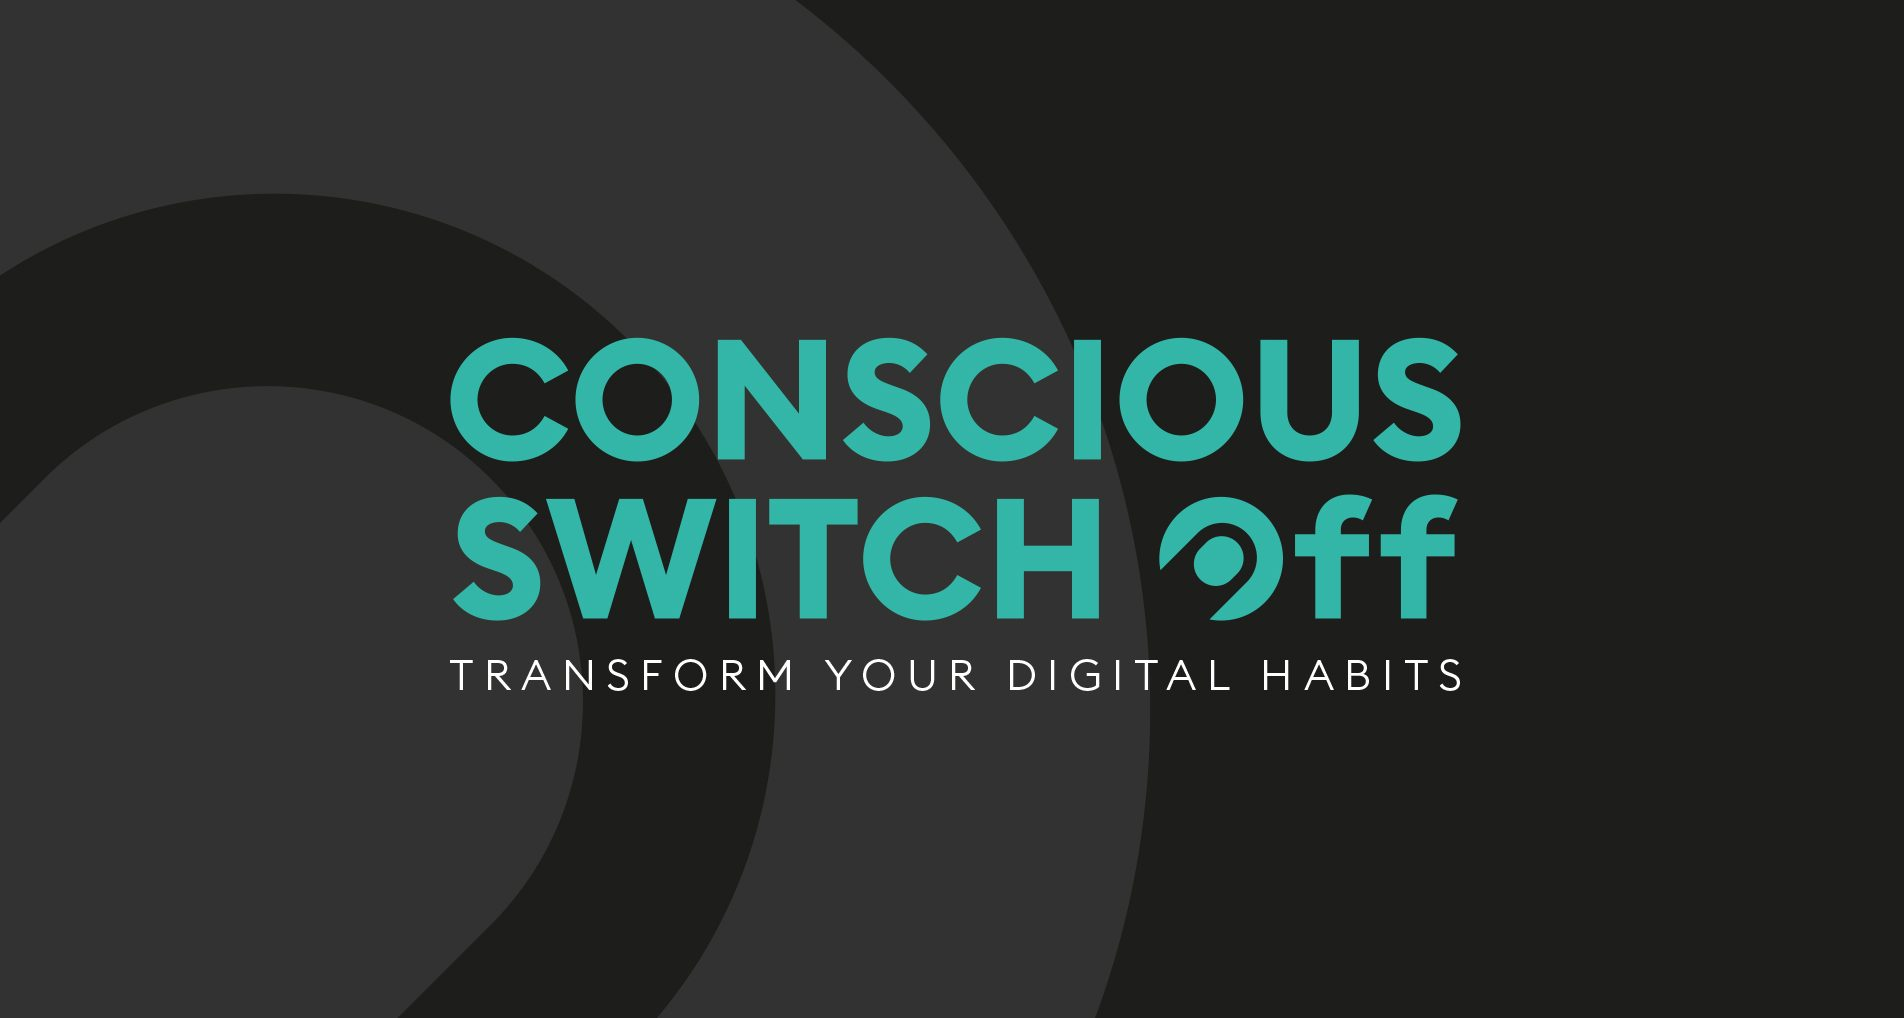 Conscious switch off - transform your digital habits